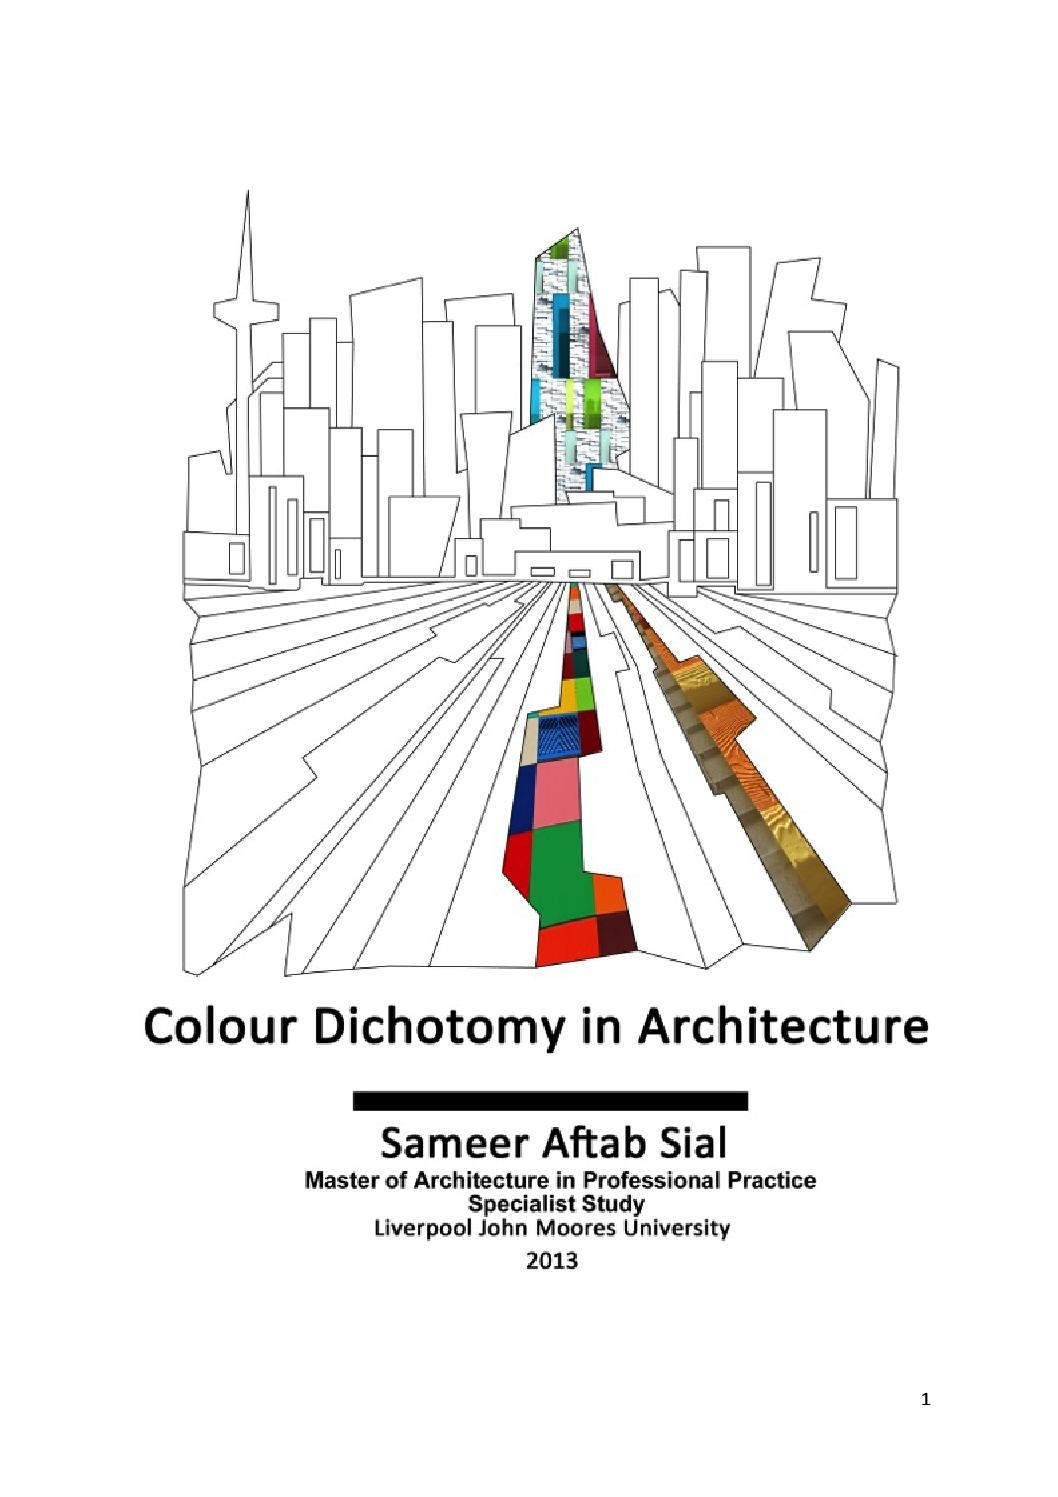 [sameer aftab sial] colour dichotomy in architecture by